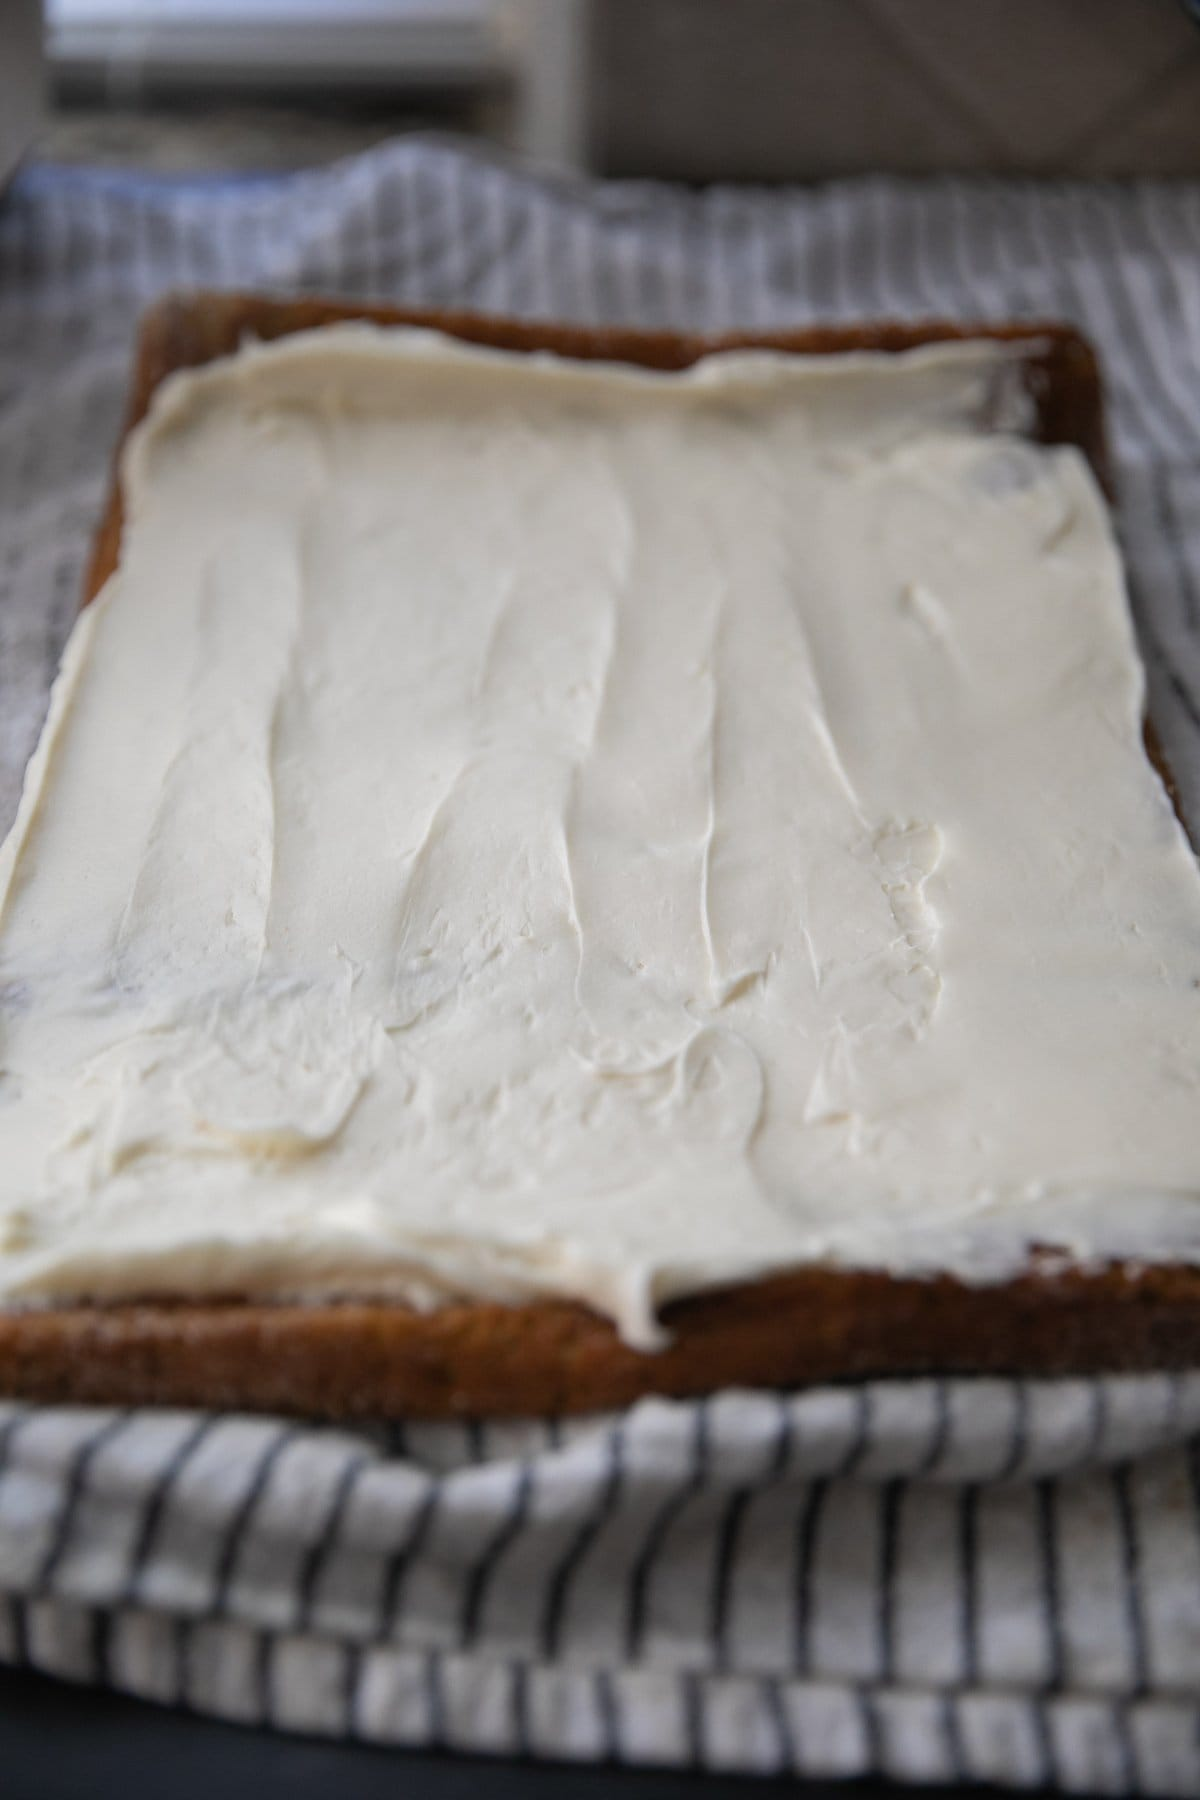 pumpkin roll cake with cream cheese filling spread over it unrolled